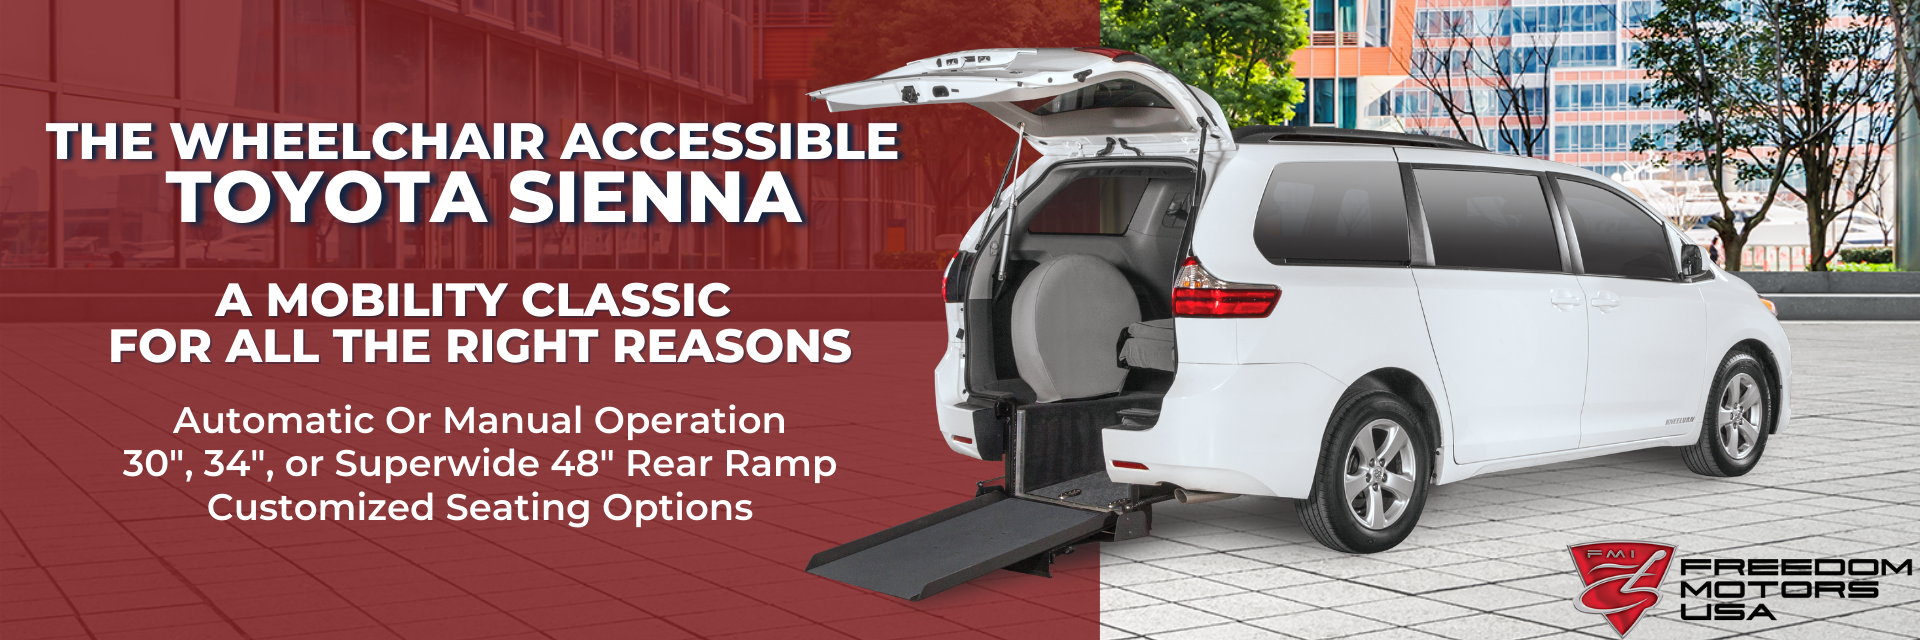 TOYOTA SIENNA The Wheelchair Accessible Classic